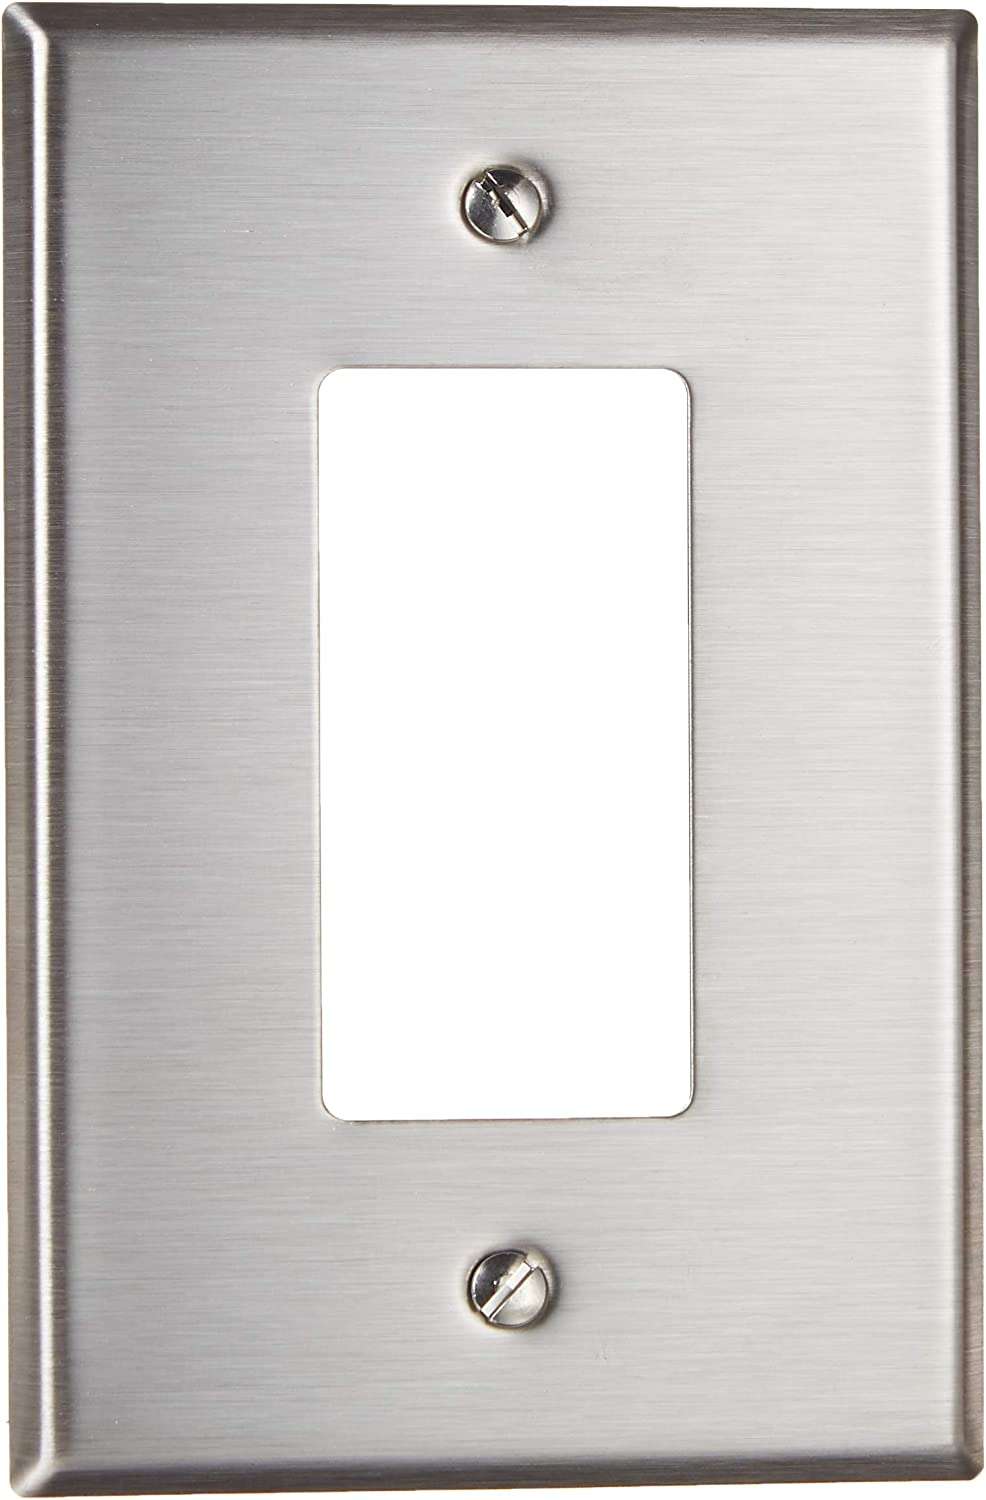 Leviton SO26, 1 pack, Stainless Steel